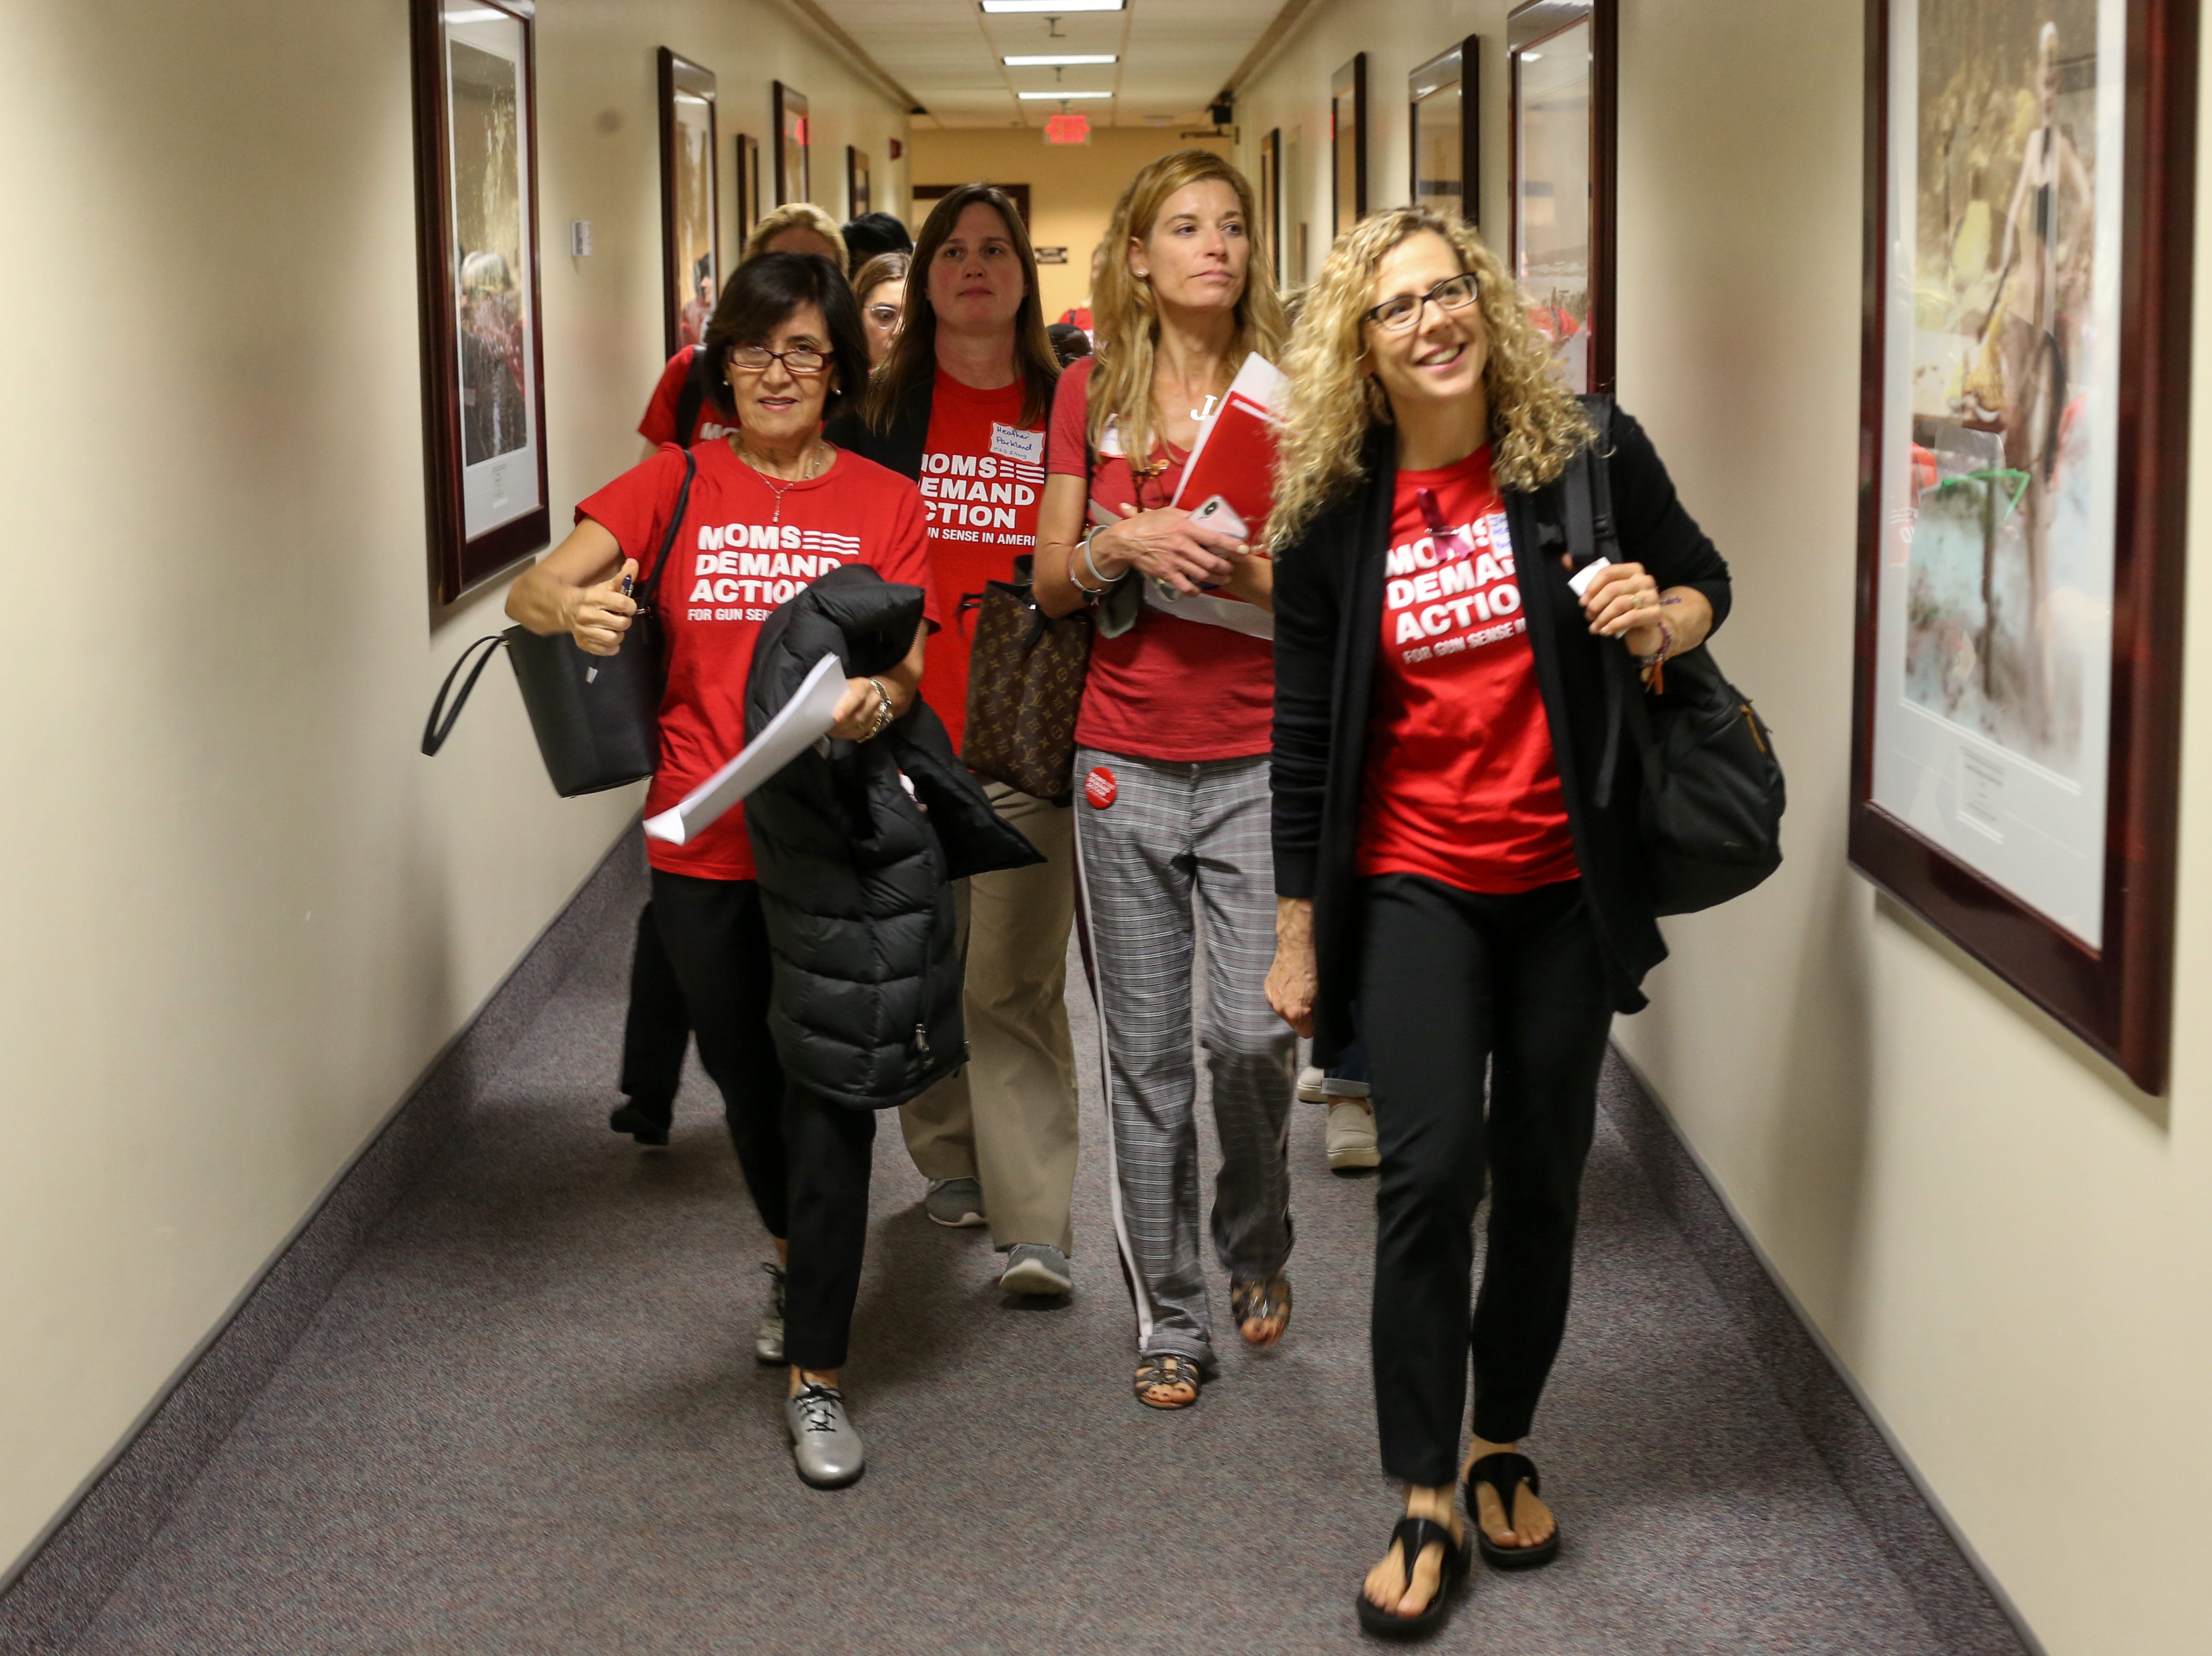 Members of Moms Demand Action from Broward and Palm Beach counties walk through the Capitol looking for the office of Sen. Bobby Powell as they meet with lawmakers to lobby for stricter gun laws Wednesday, Feb. 6, 2019.